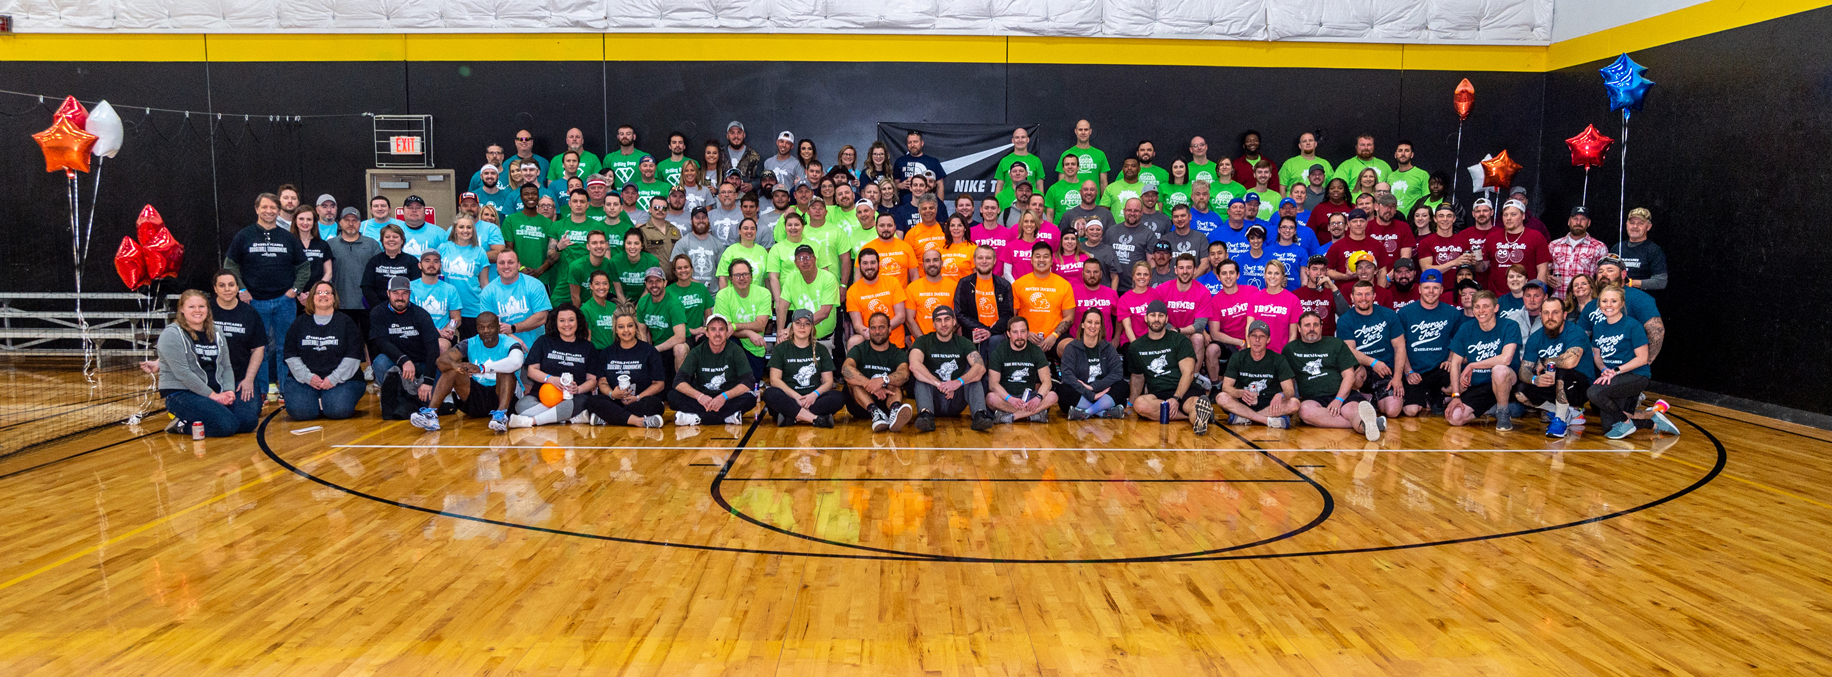 009-Keeley-Dodgeball-Tournament-2020